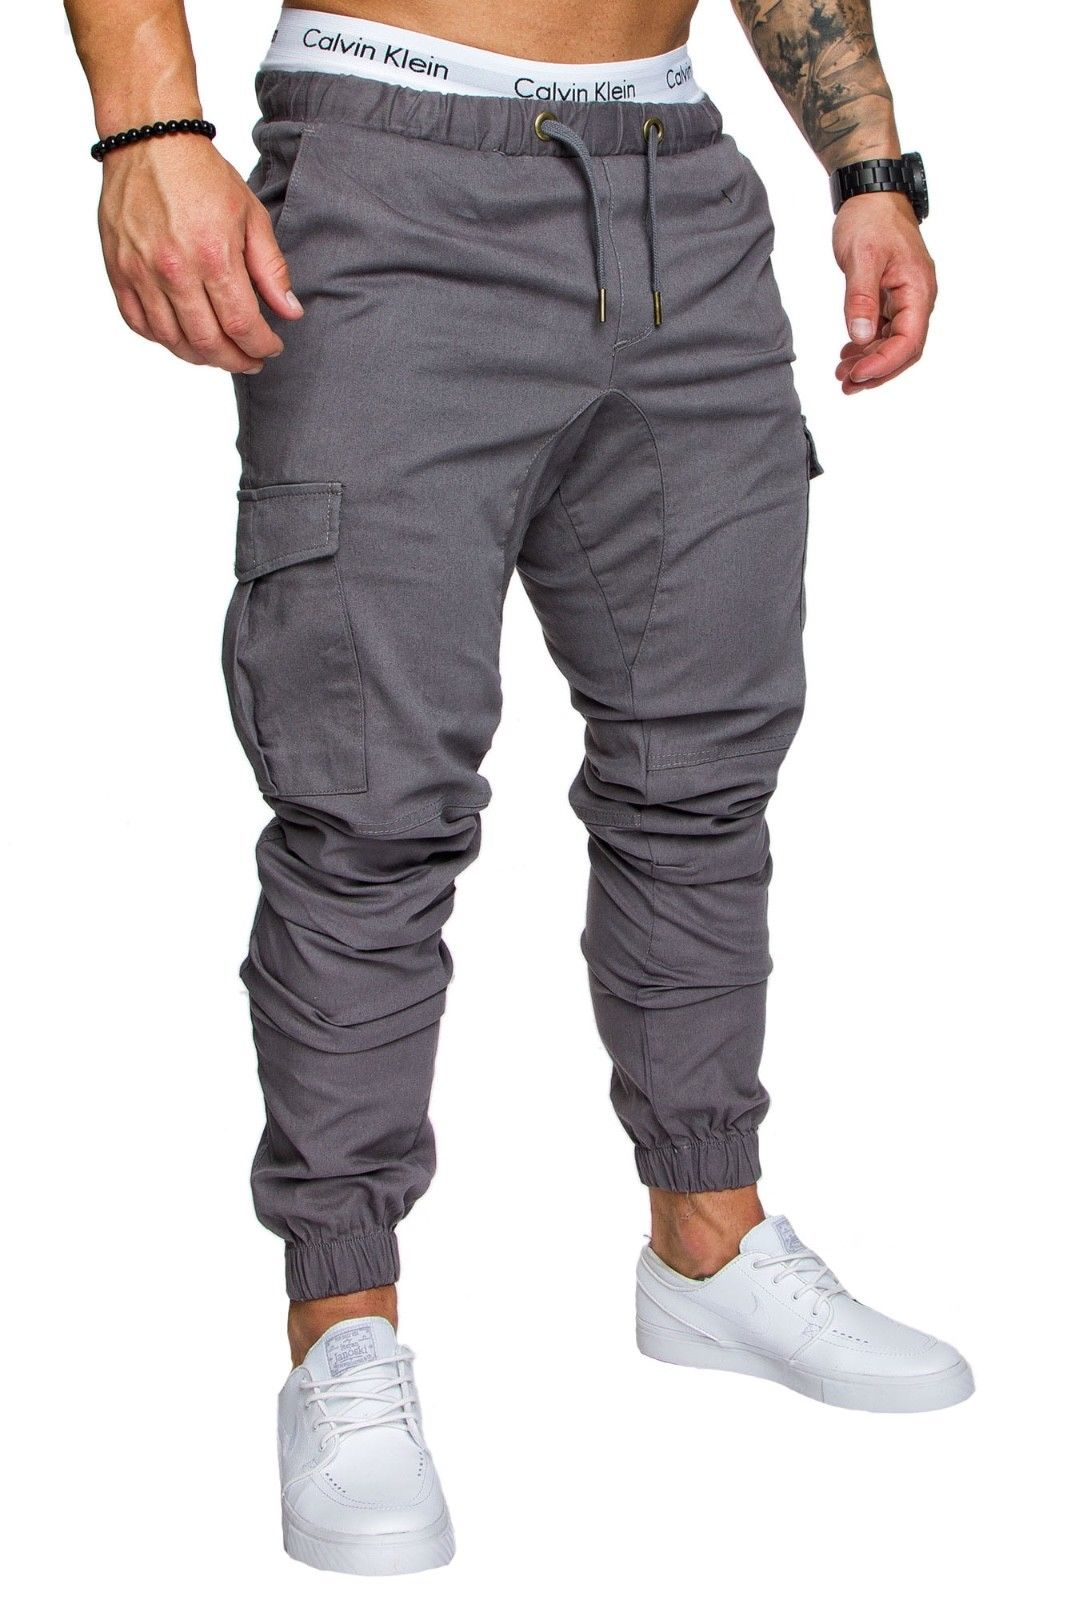 New 2018 Brand Casual Joggers Solid Color Pants Men Cotton Elastic Trousers Military Sty ...